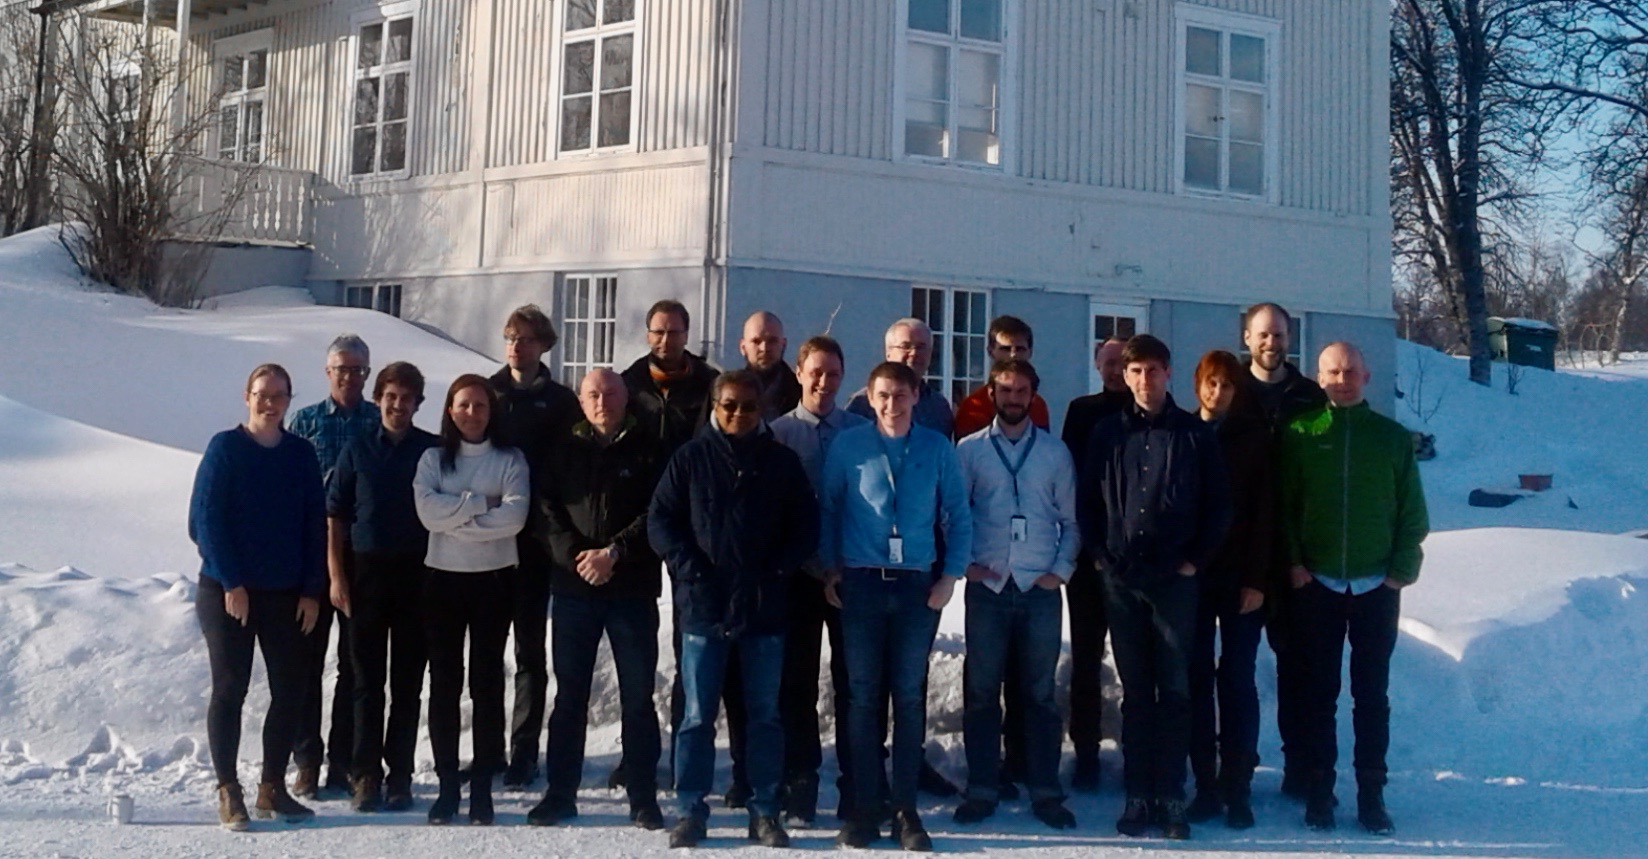 Alertness meeting in March, here in front of the old Institute for Geophysics in Tromsø. Photo: Sevim Gulbrandsen.